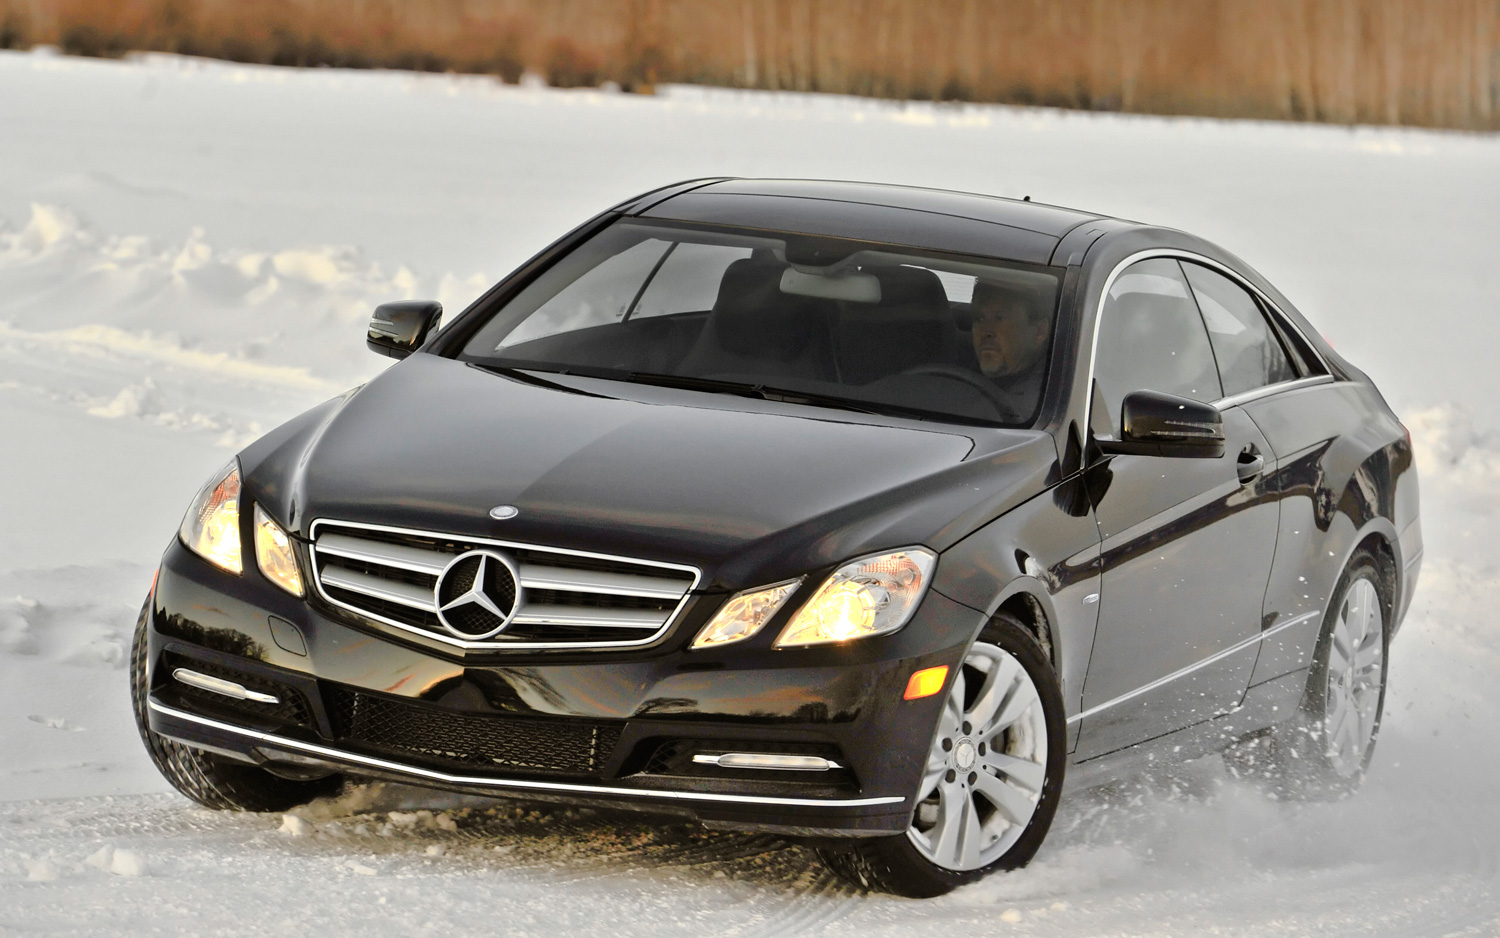 Mercedes benz 350 technical details history photos on for What are the different classes of mercedes benz cars